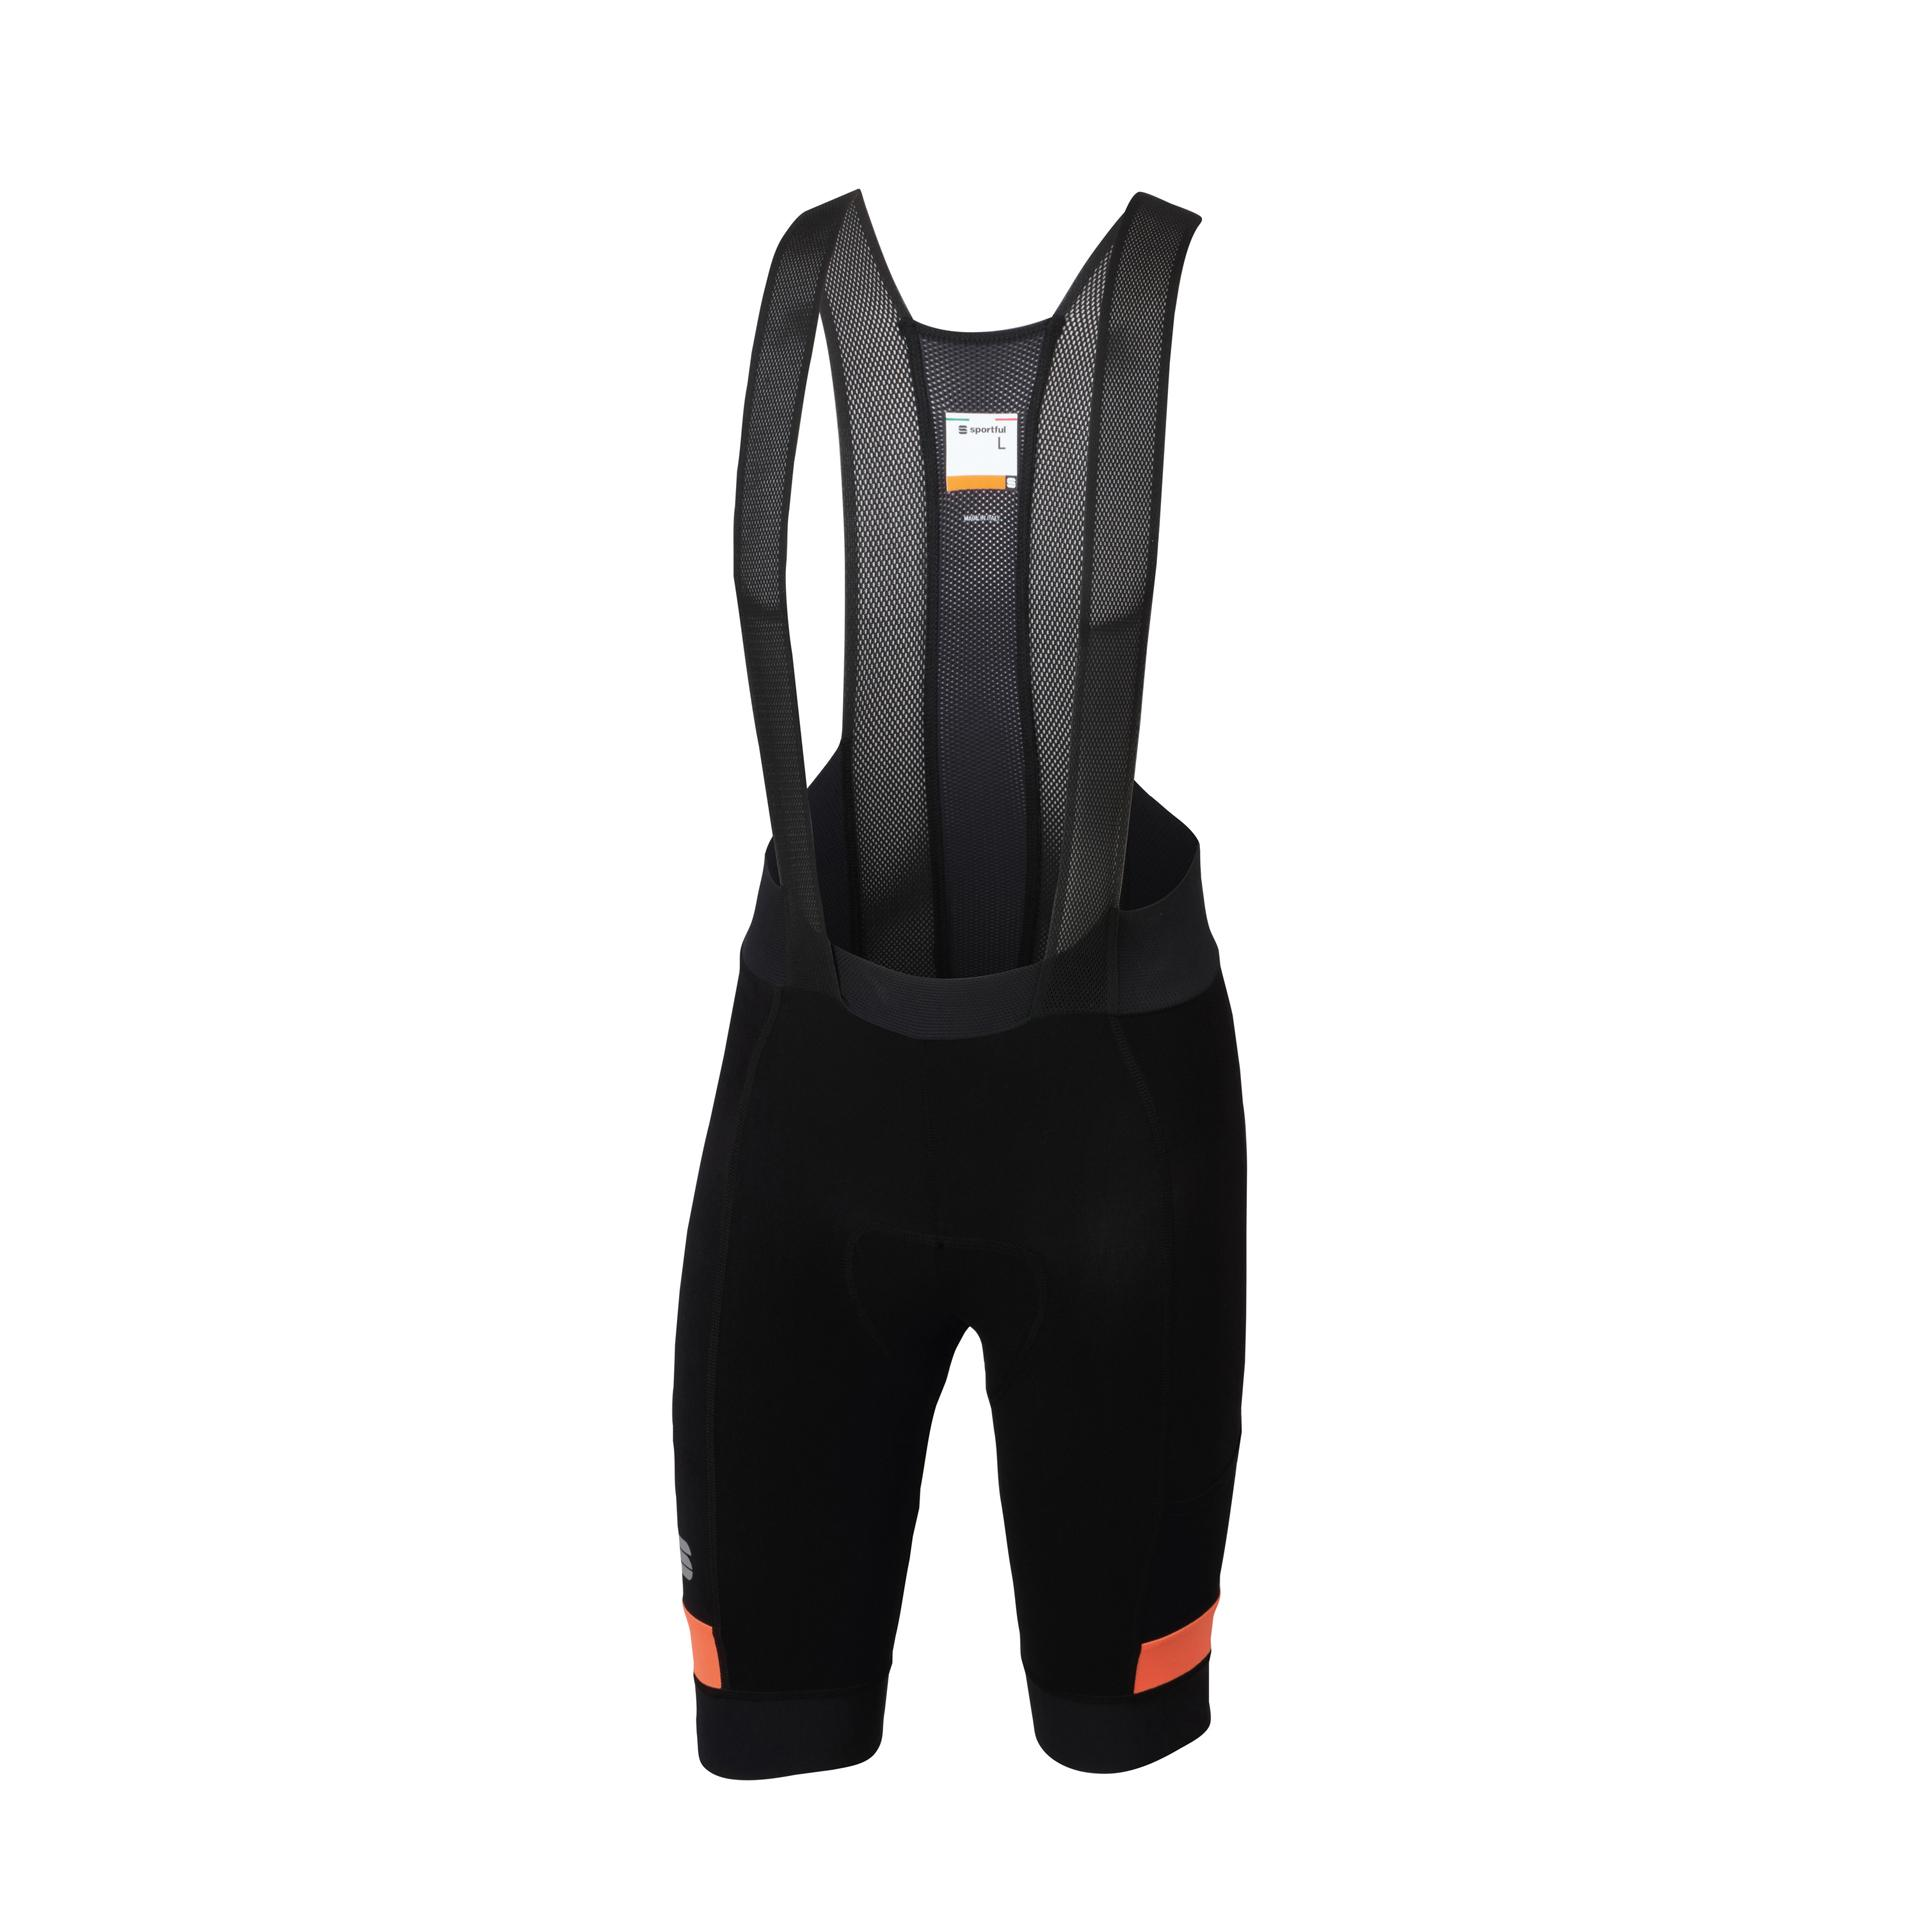 Afbeelding Sportful Fietsbroek met bretels - koersbroek Heren Zwart Oranje / SF Supergiara Bibshort-Black/Orange Sdr